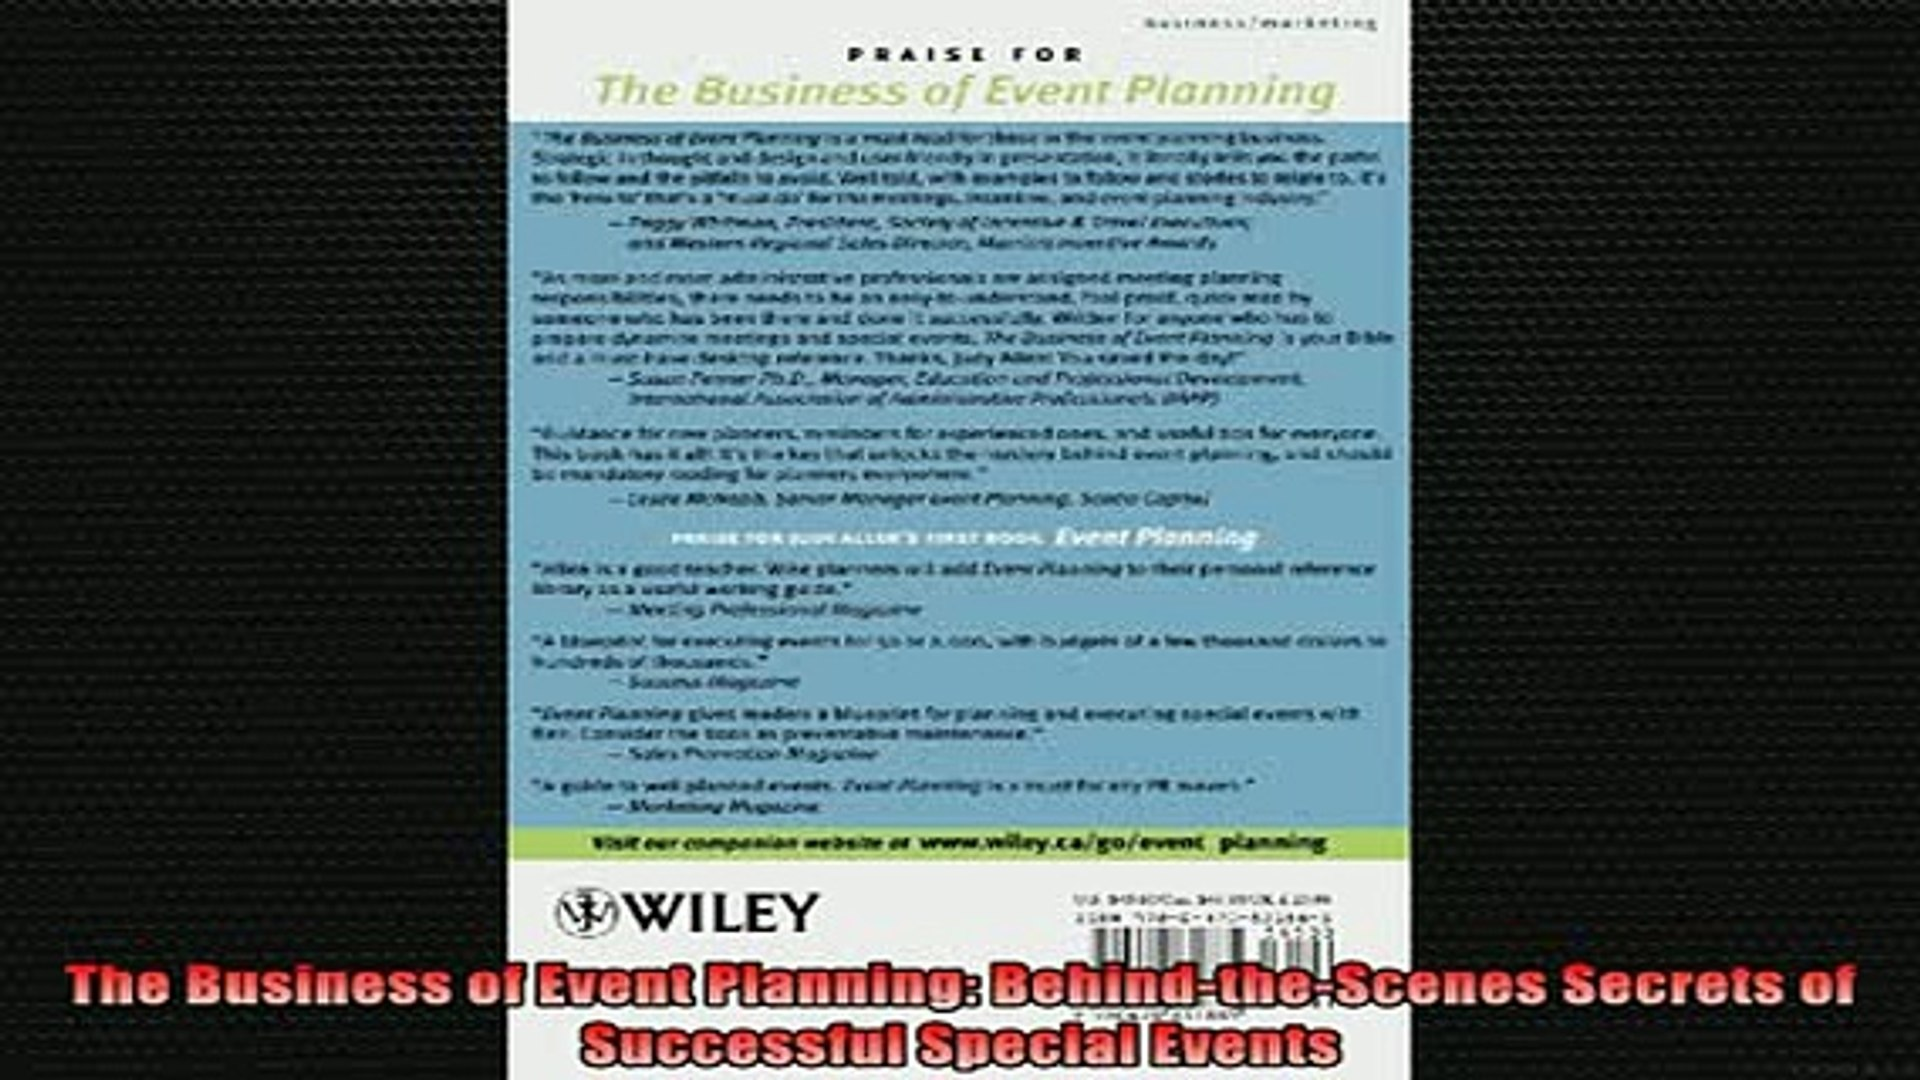 Downlaod Full PDF Free  The Business of Event Planning BehindtheScenes Secrets of Successful Special